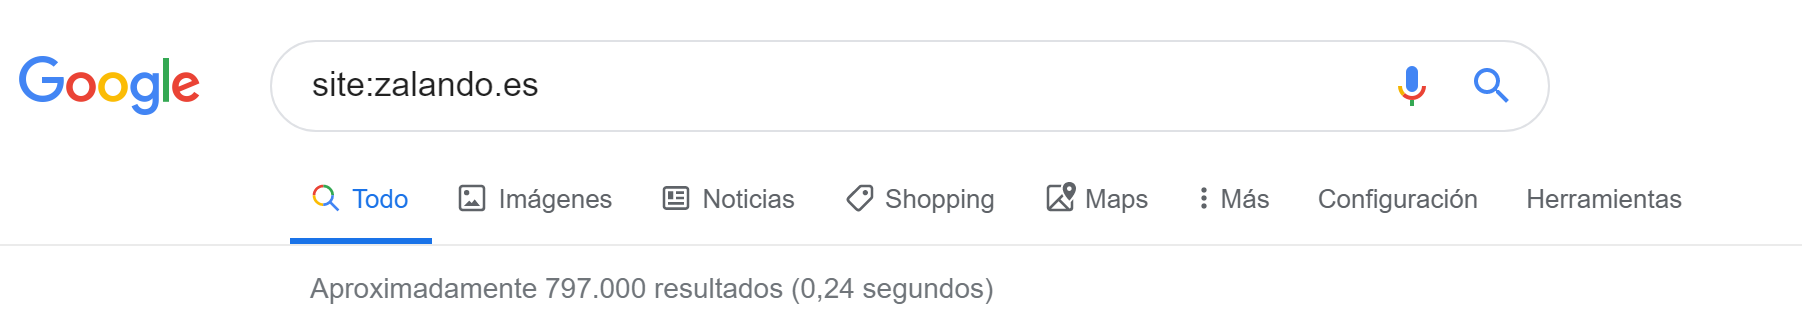 Google site:-query para el dominio zalando.es el 19.09.2019